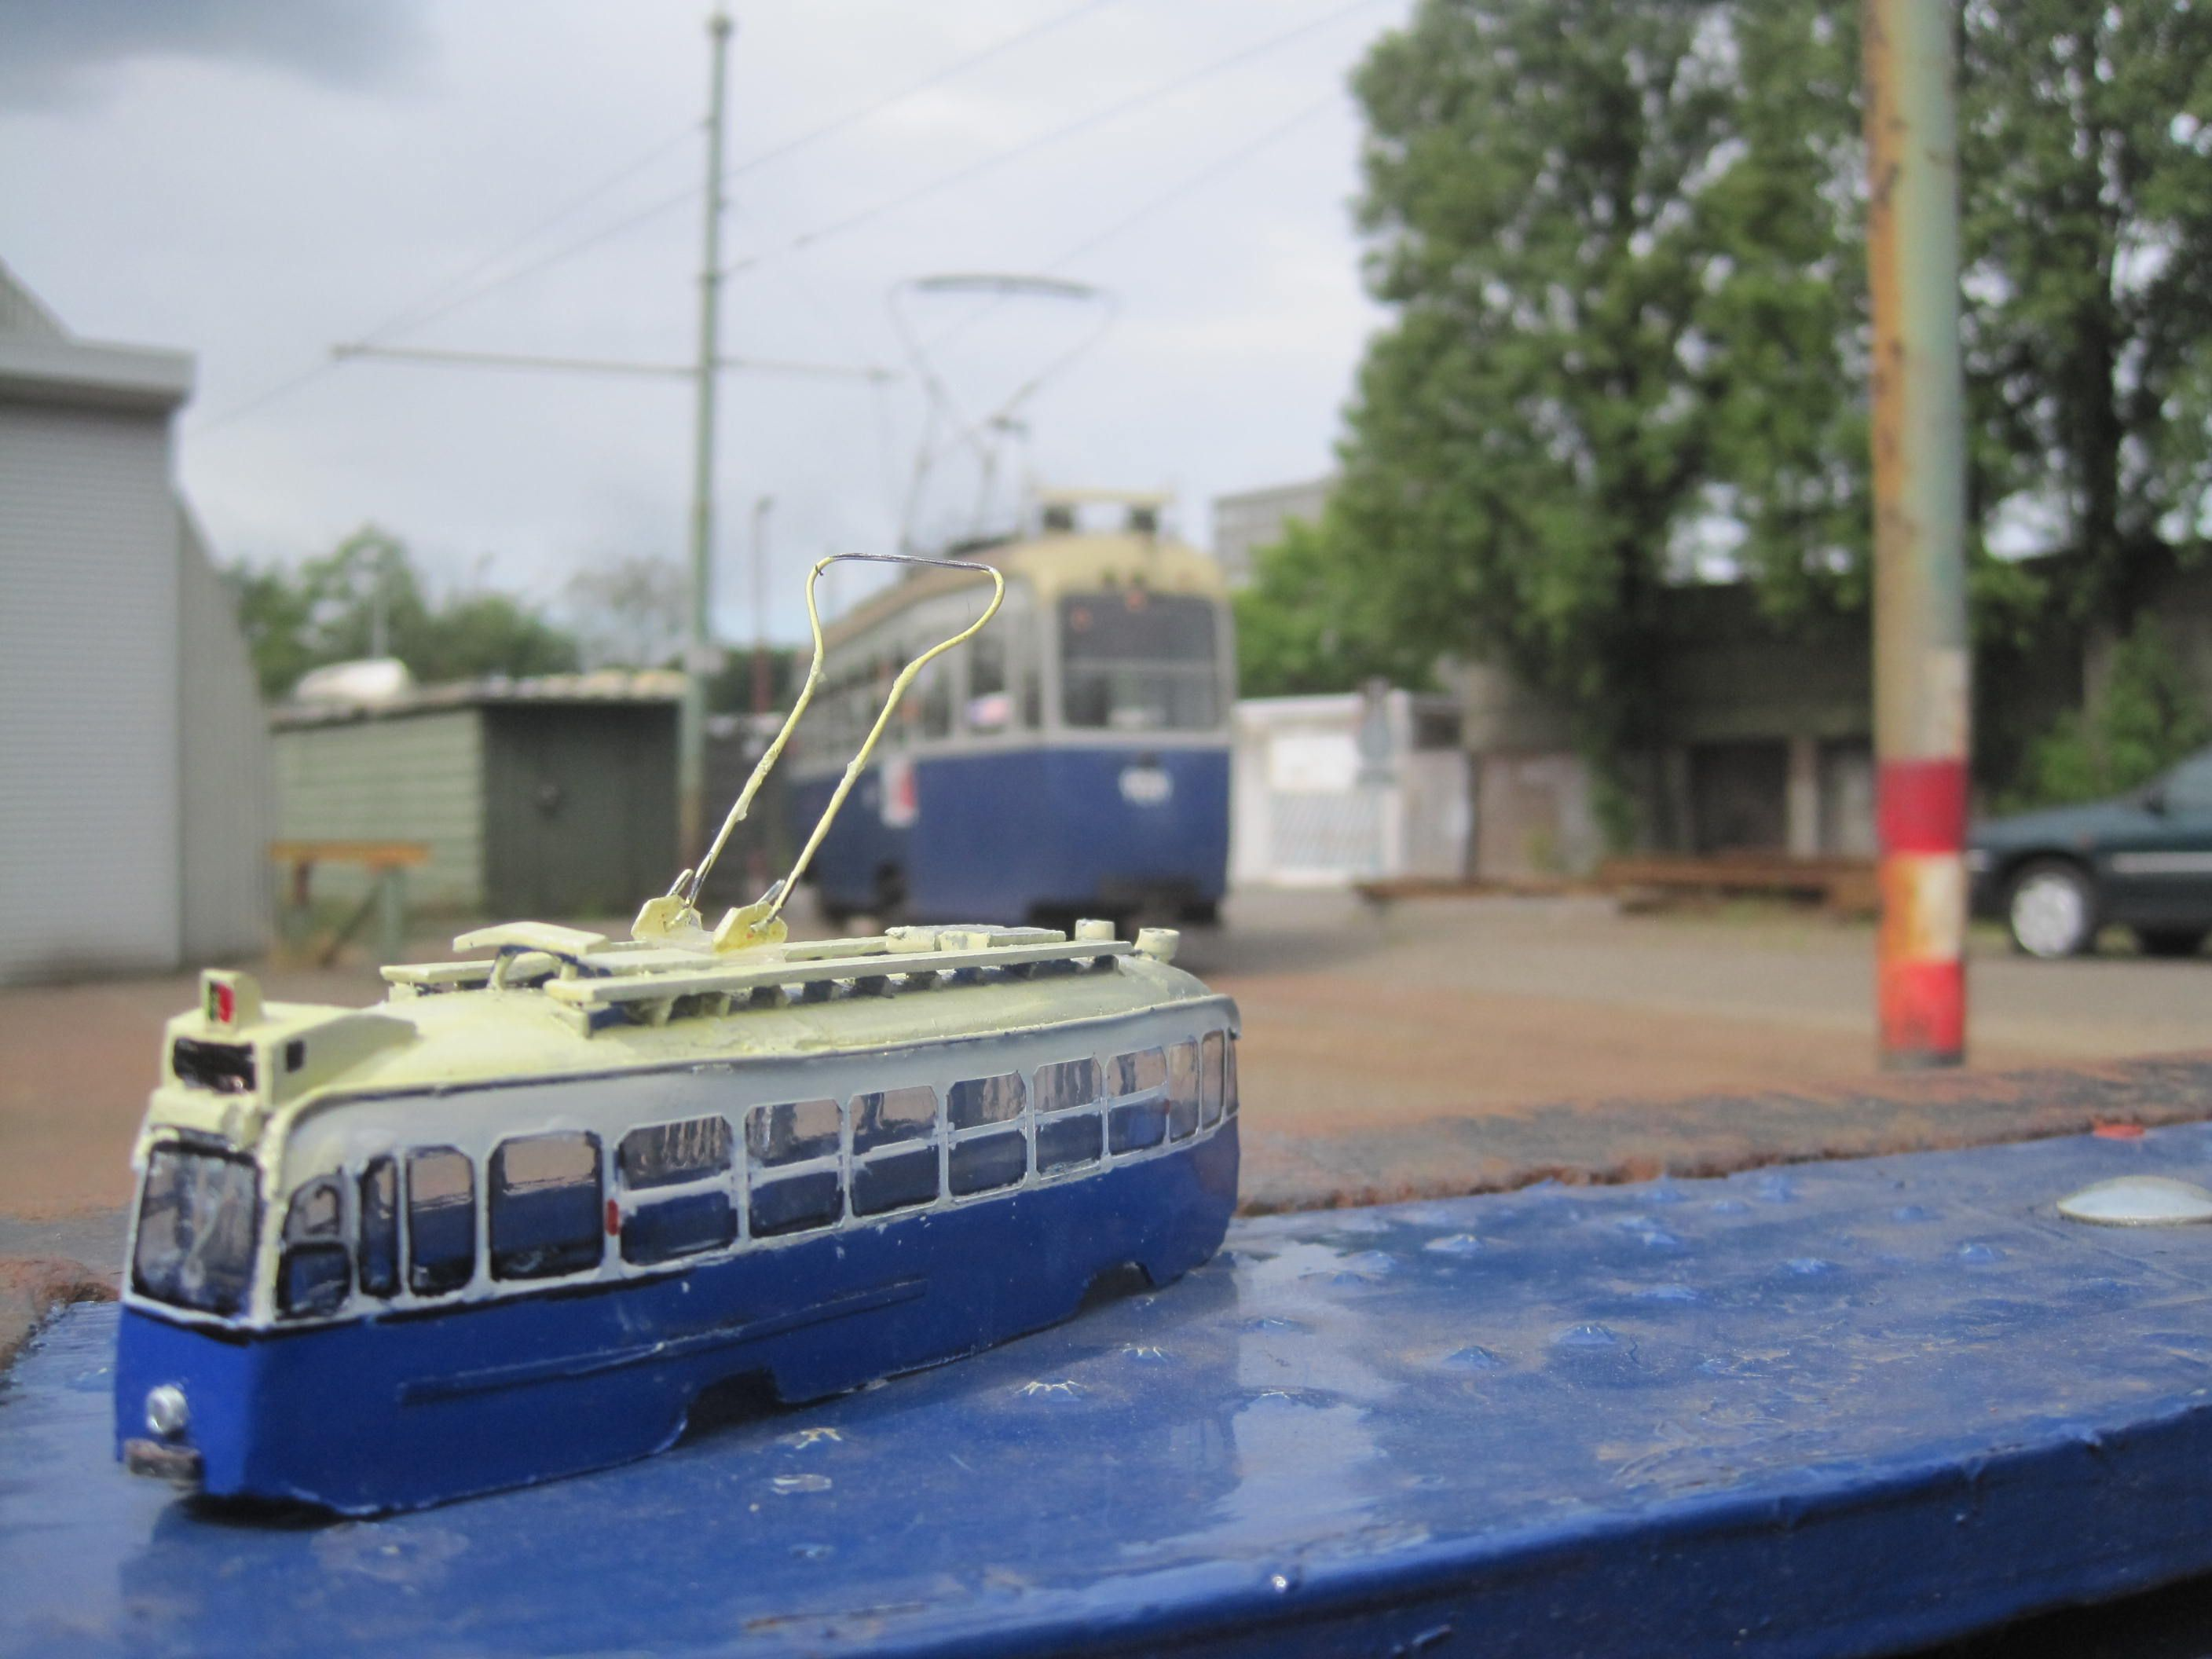 Model of a 3-axle tram,in the back the real thing